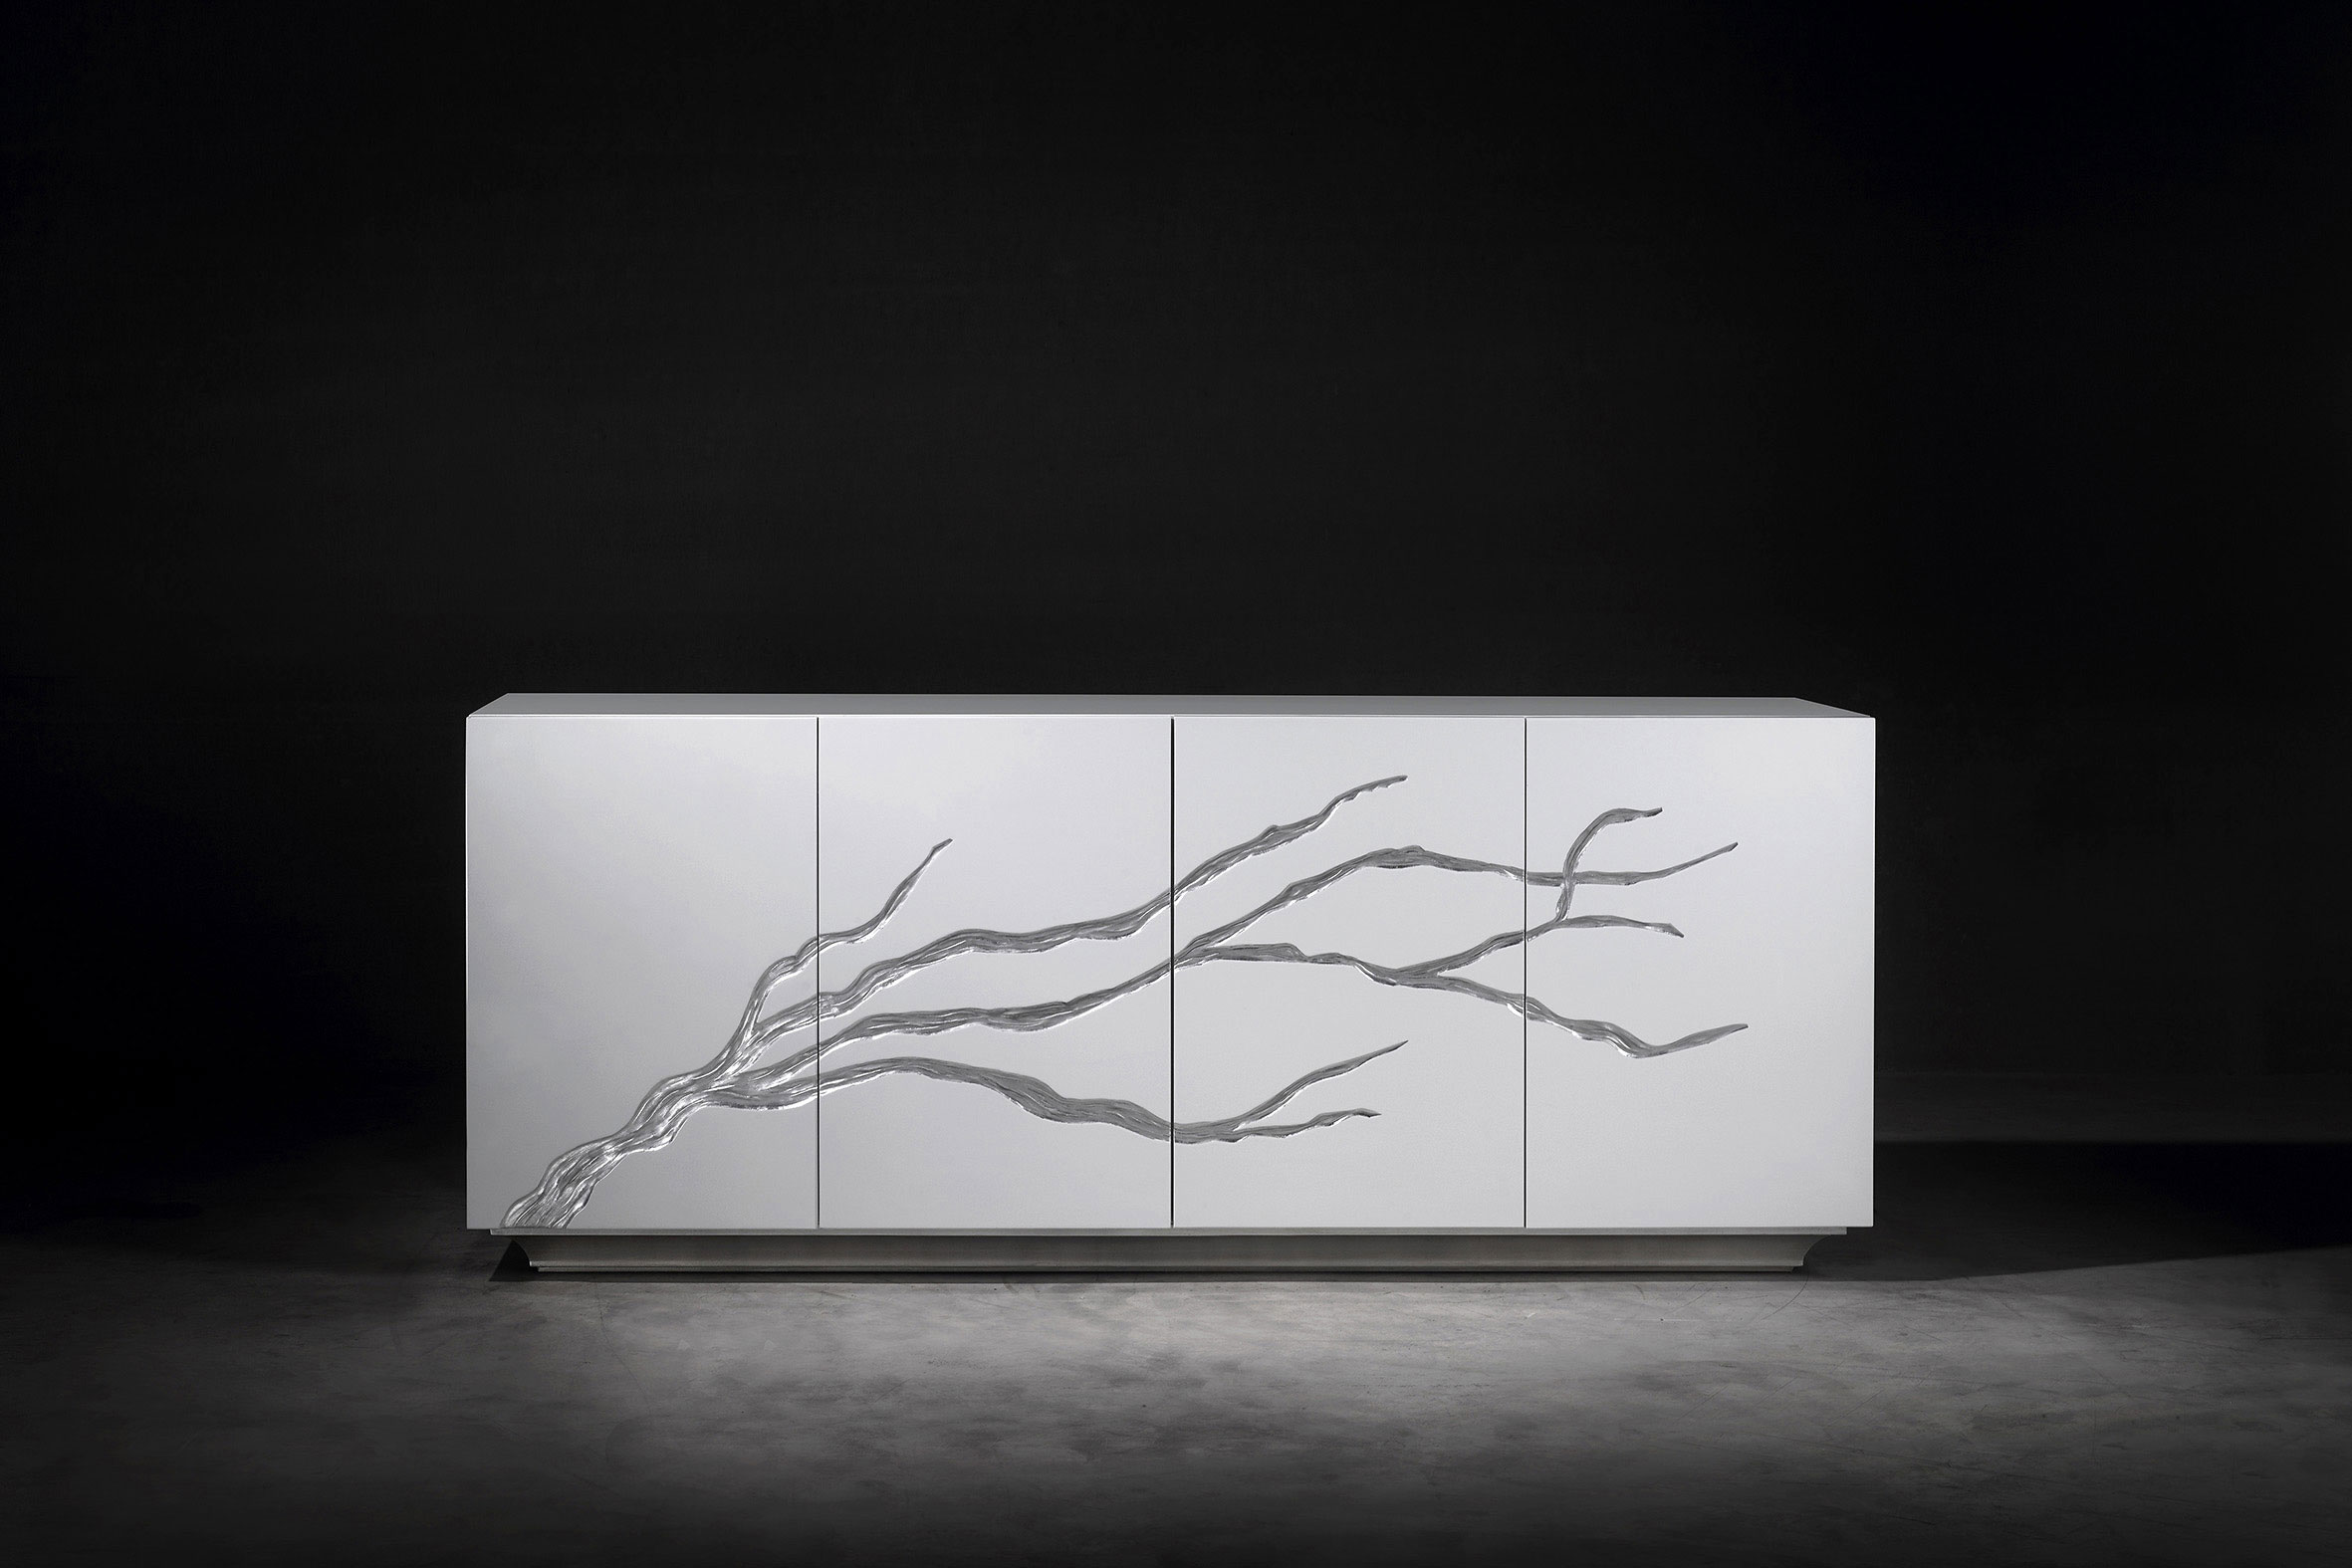 FOREST sideboard by María J. Guinot for Colección Alexandra. Photo: Courtesy of Colección Alexandra.